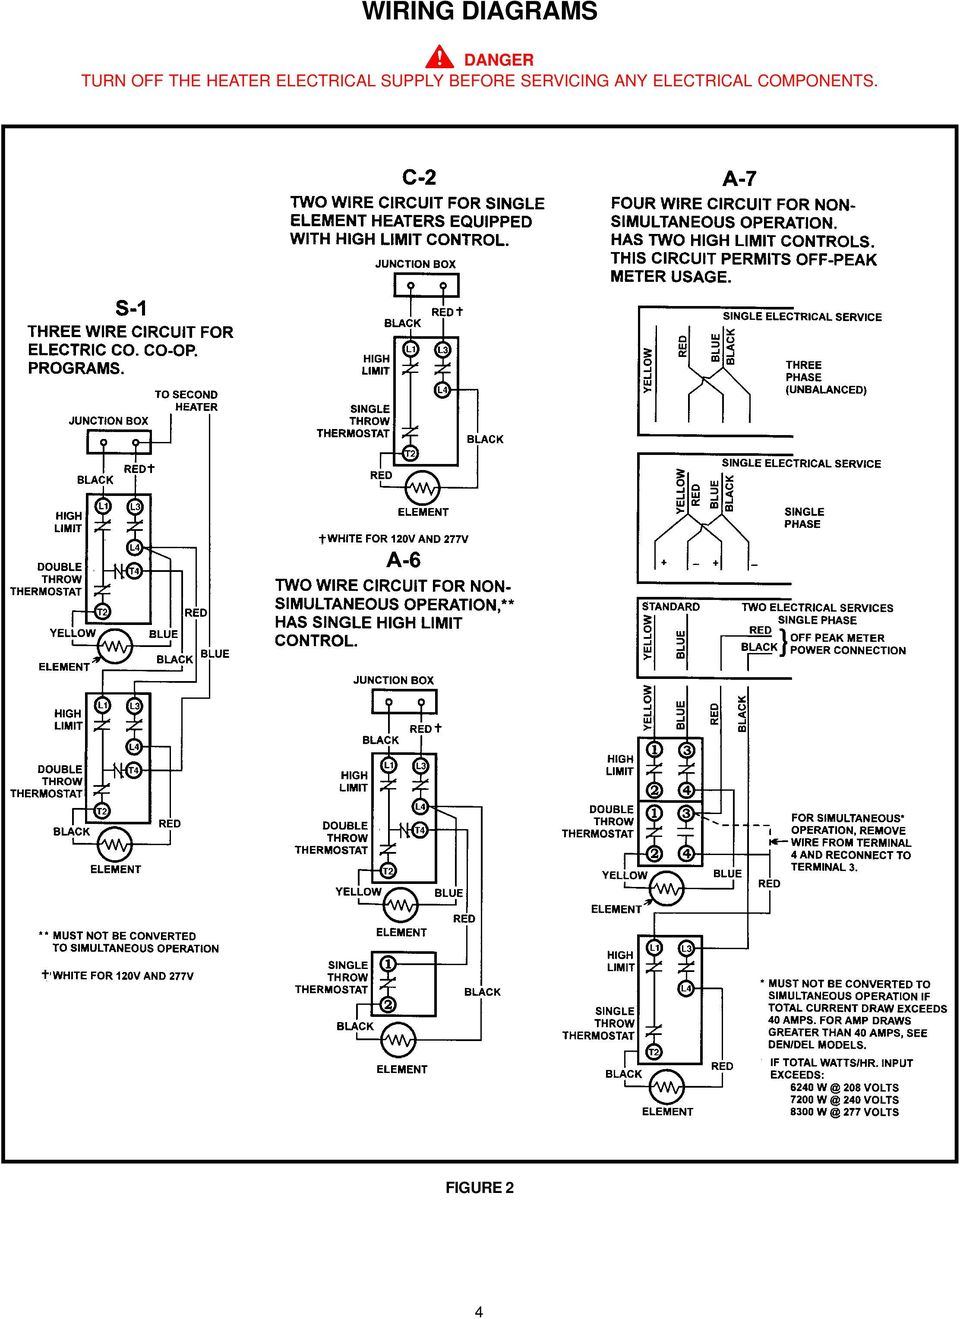 Electric Residential Water Heater Owners Manual General Single Element Wiring Diagram Supply Before Servicing